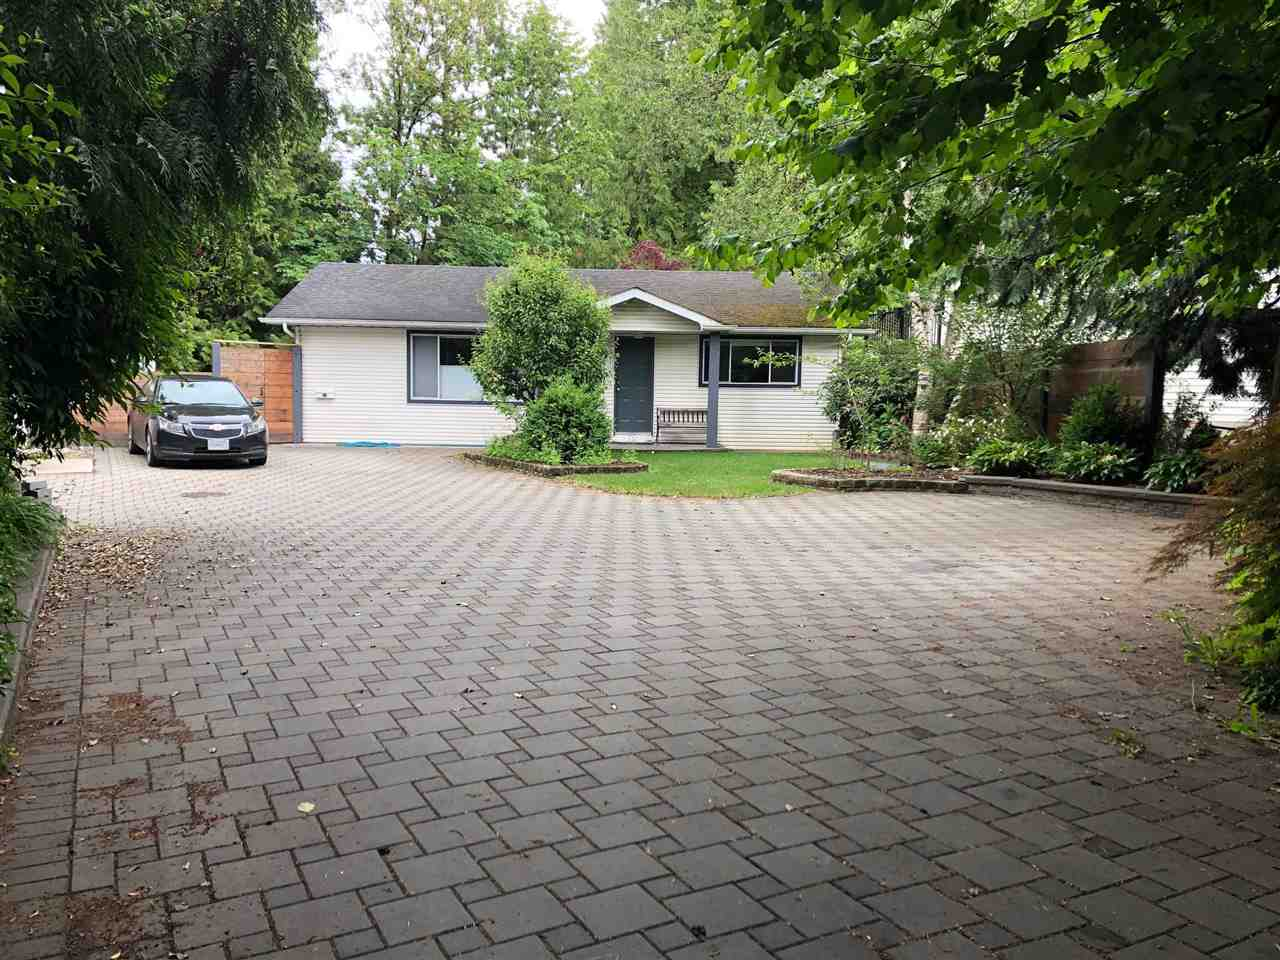 4930 200 STREET - Langley City House/Single Family for sale, 3 Bedrooms (R2591666) - #1